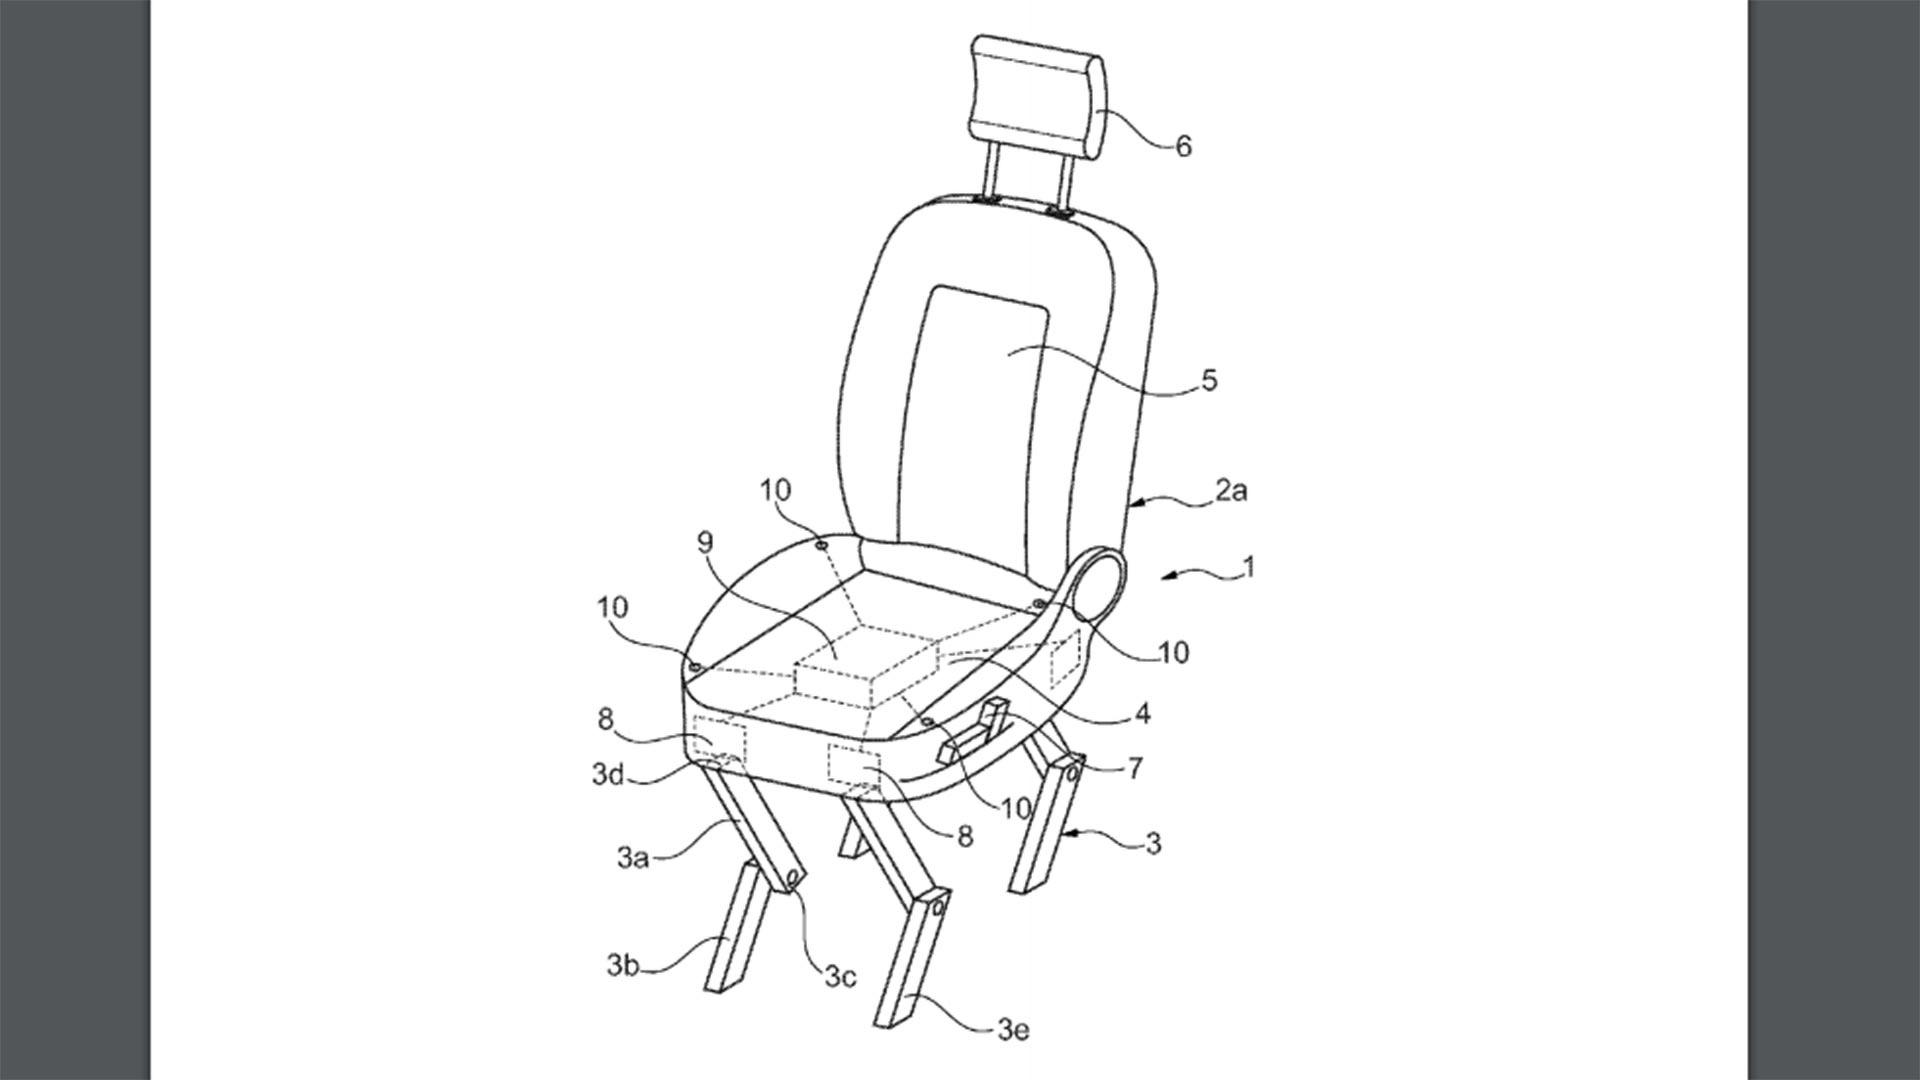 chair design patent under the weather ford redefines legs with automotive seat that can walk